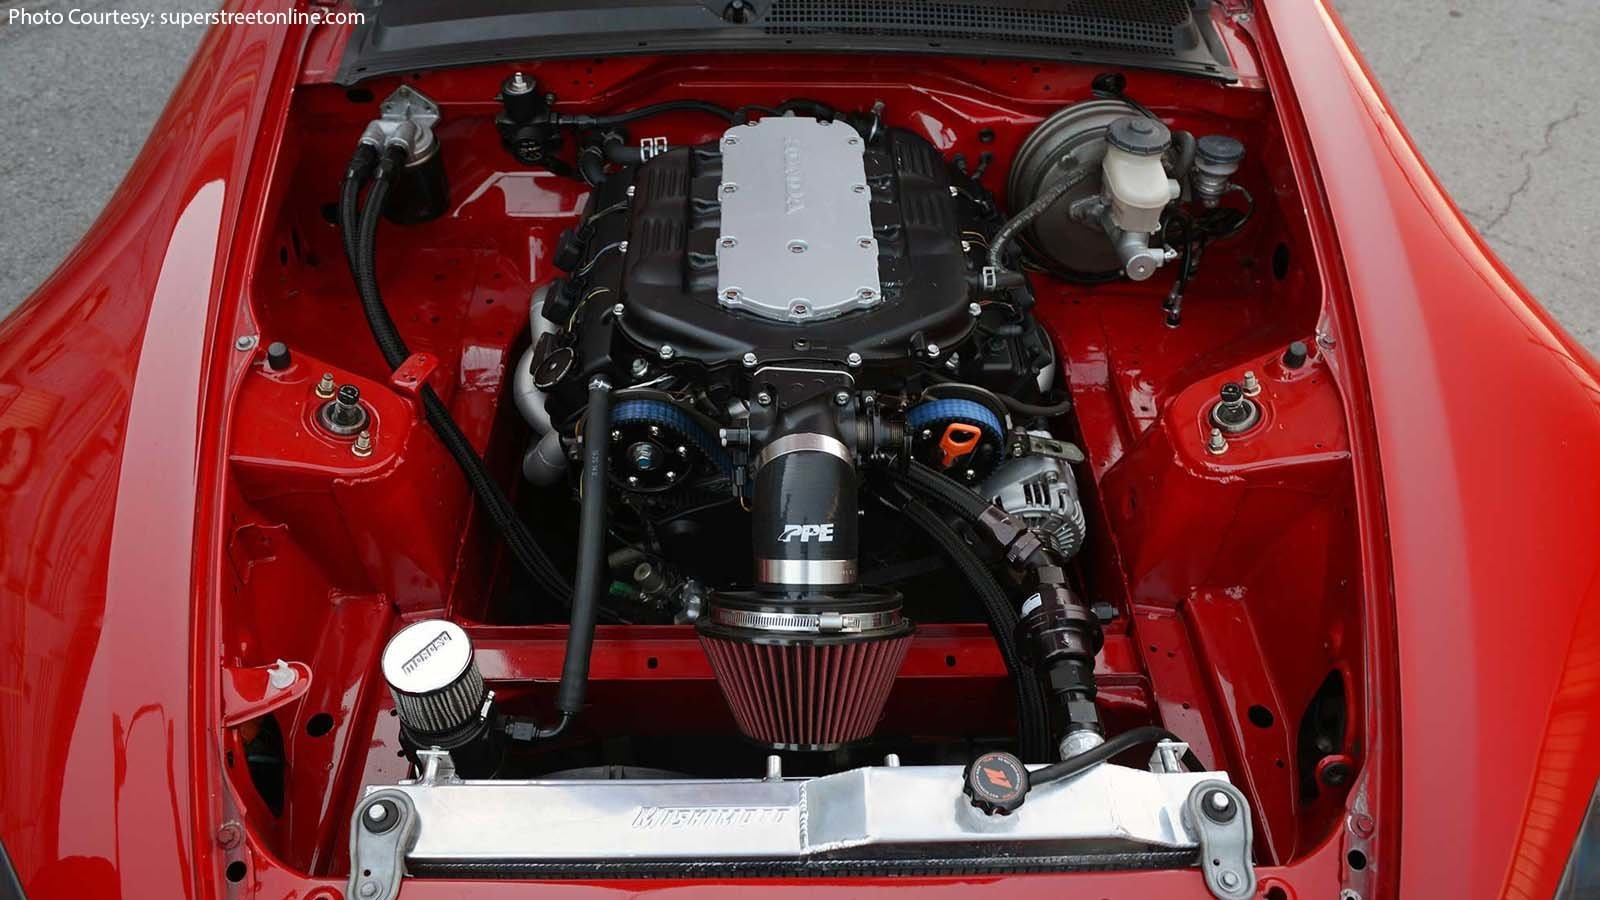 Gorgeous Red Honda S2000 is a Stylish Build